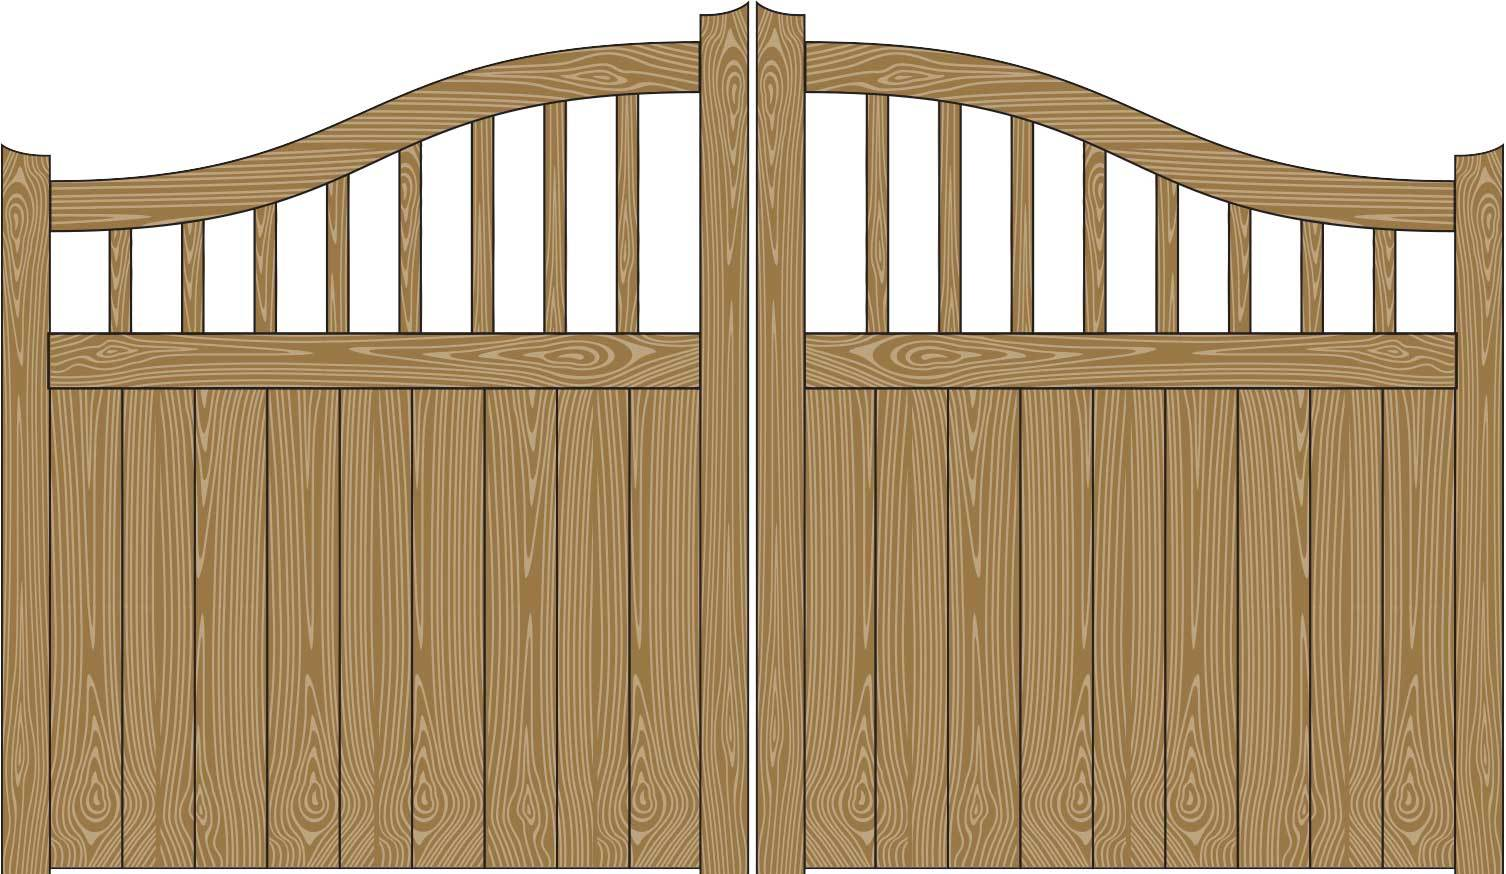 Oxley Gates Wooden York Railed Illustration